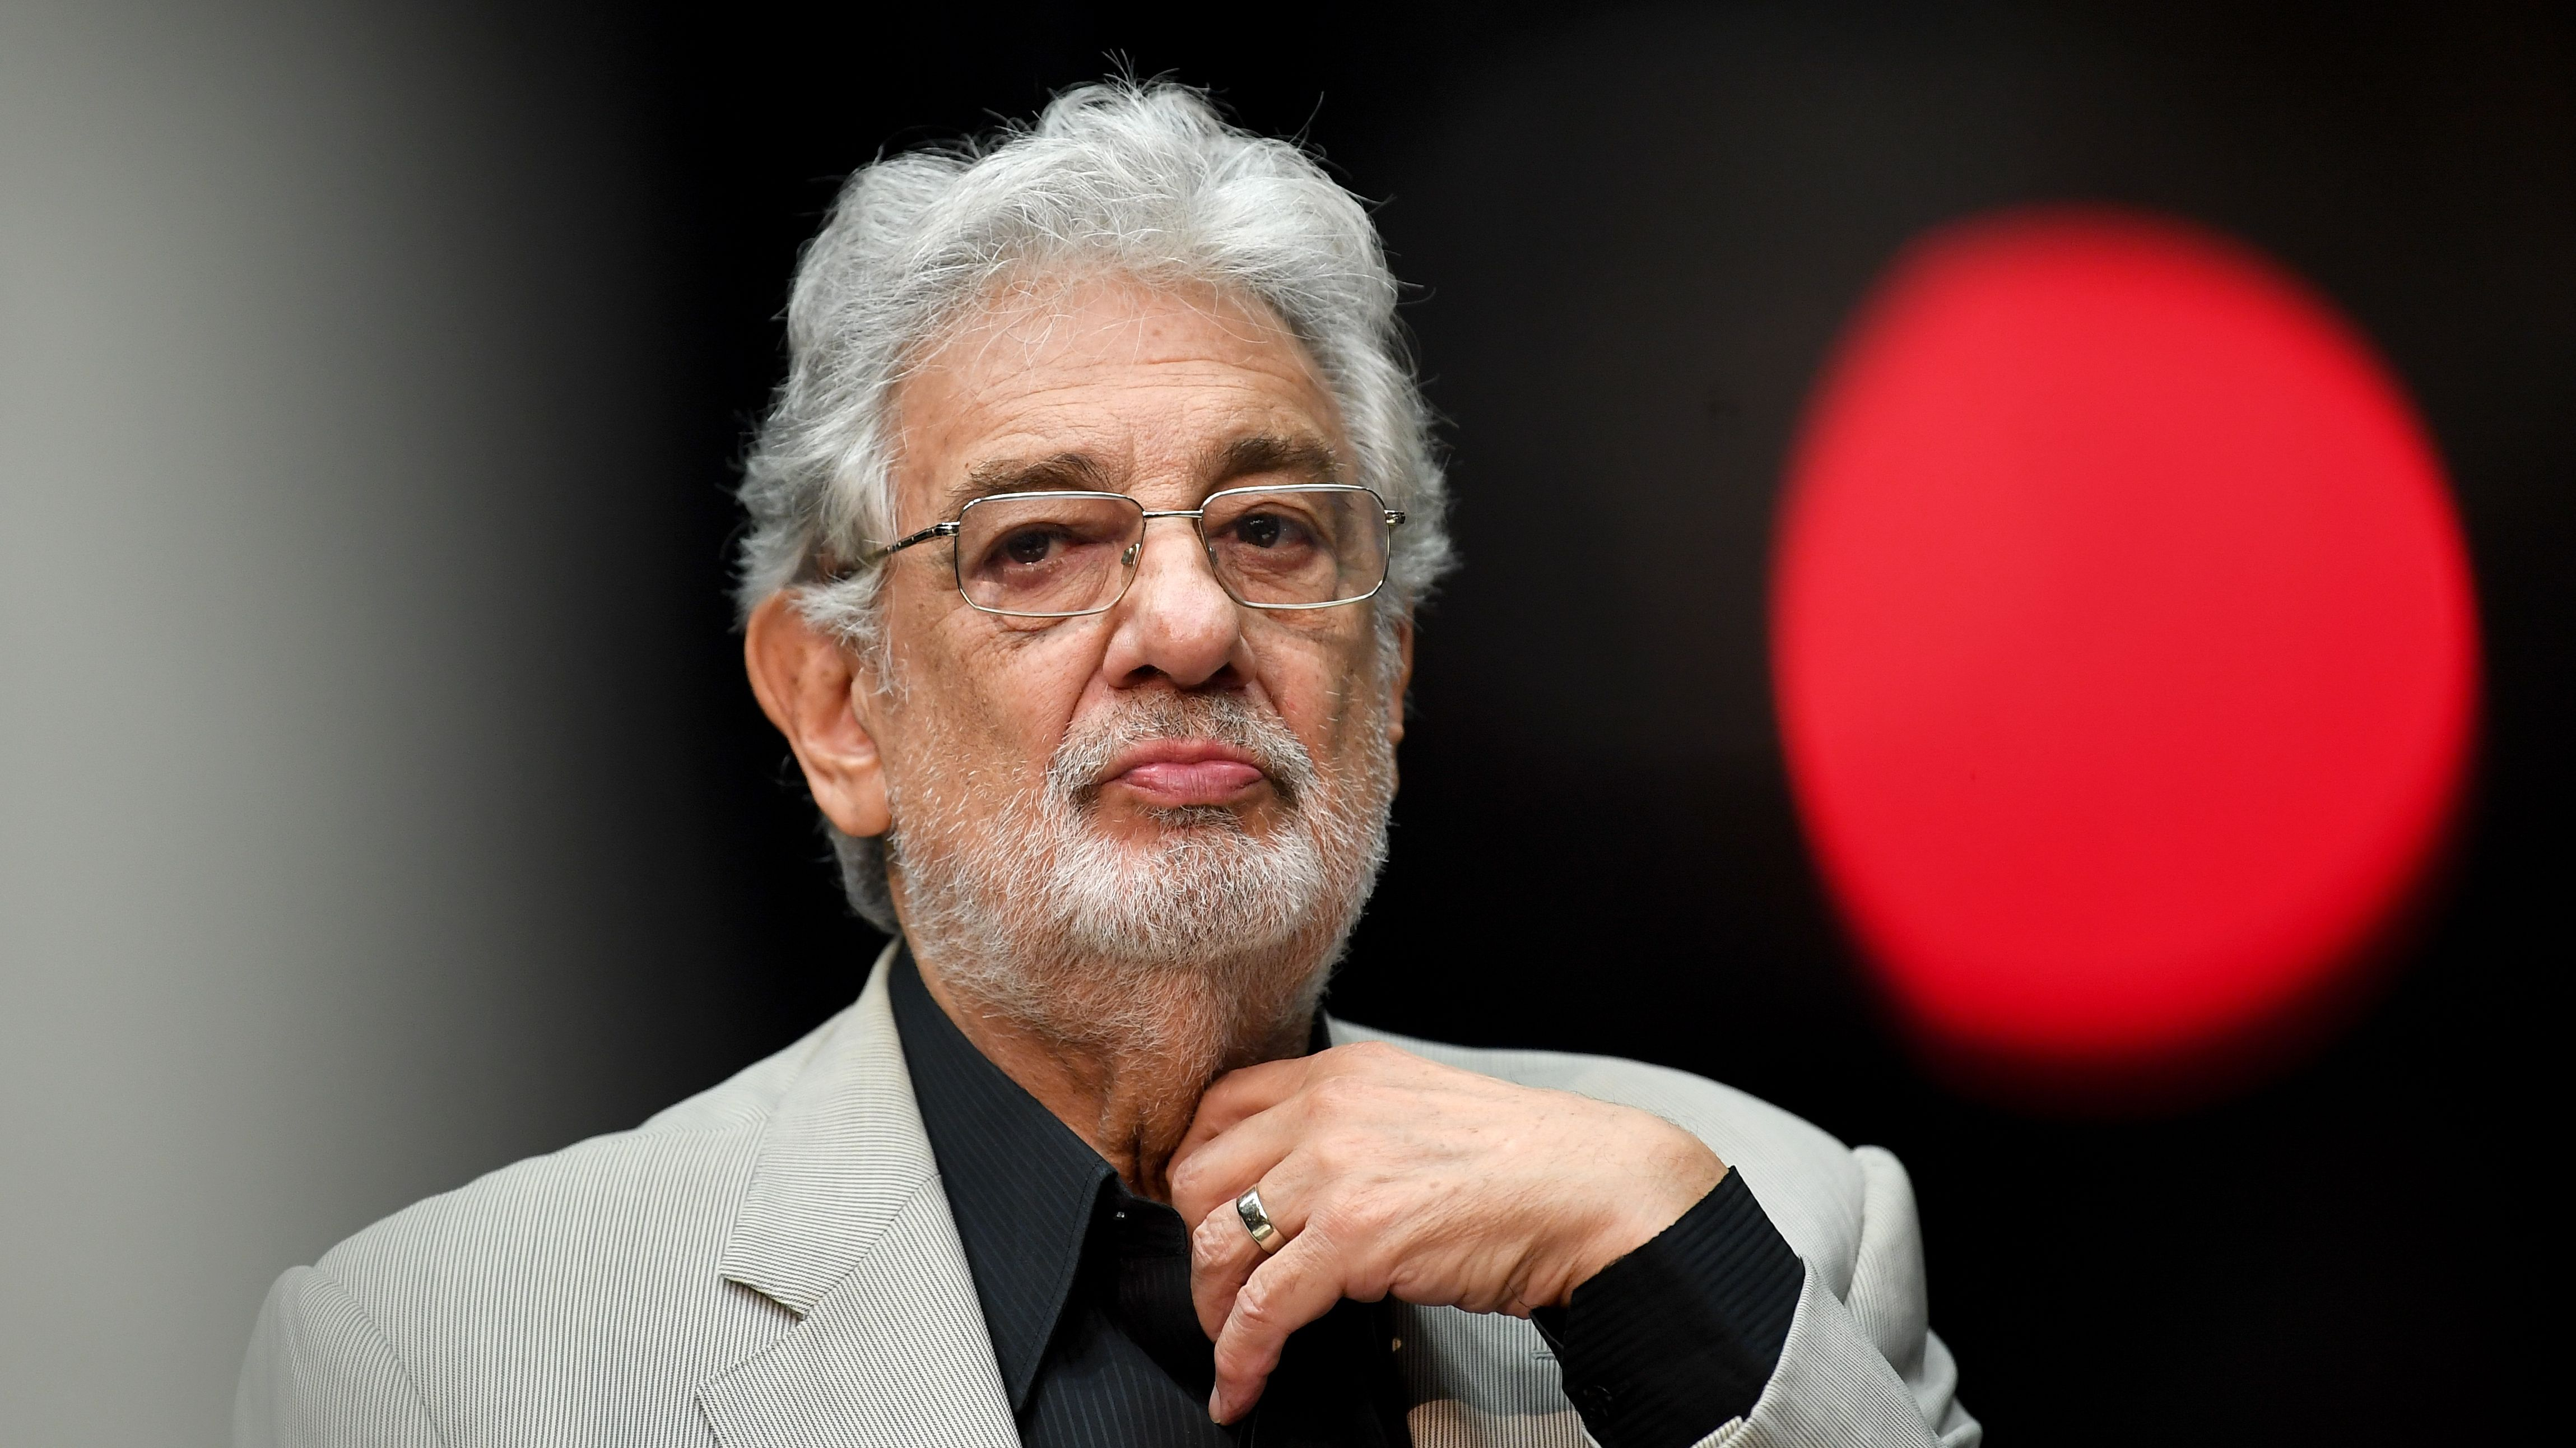 Plácido Domingo (Archivbild)